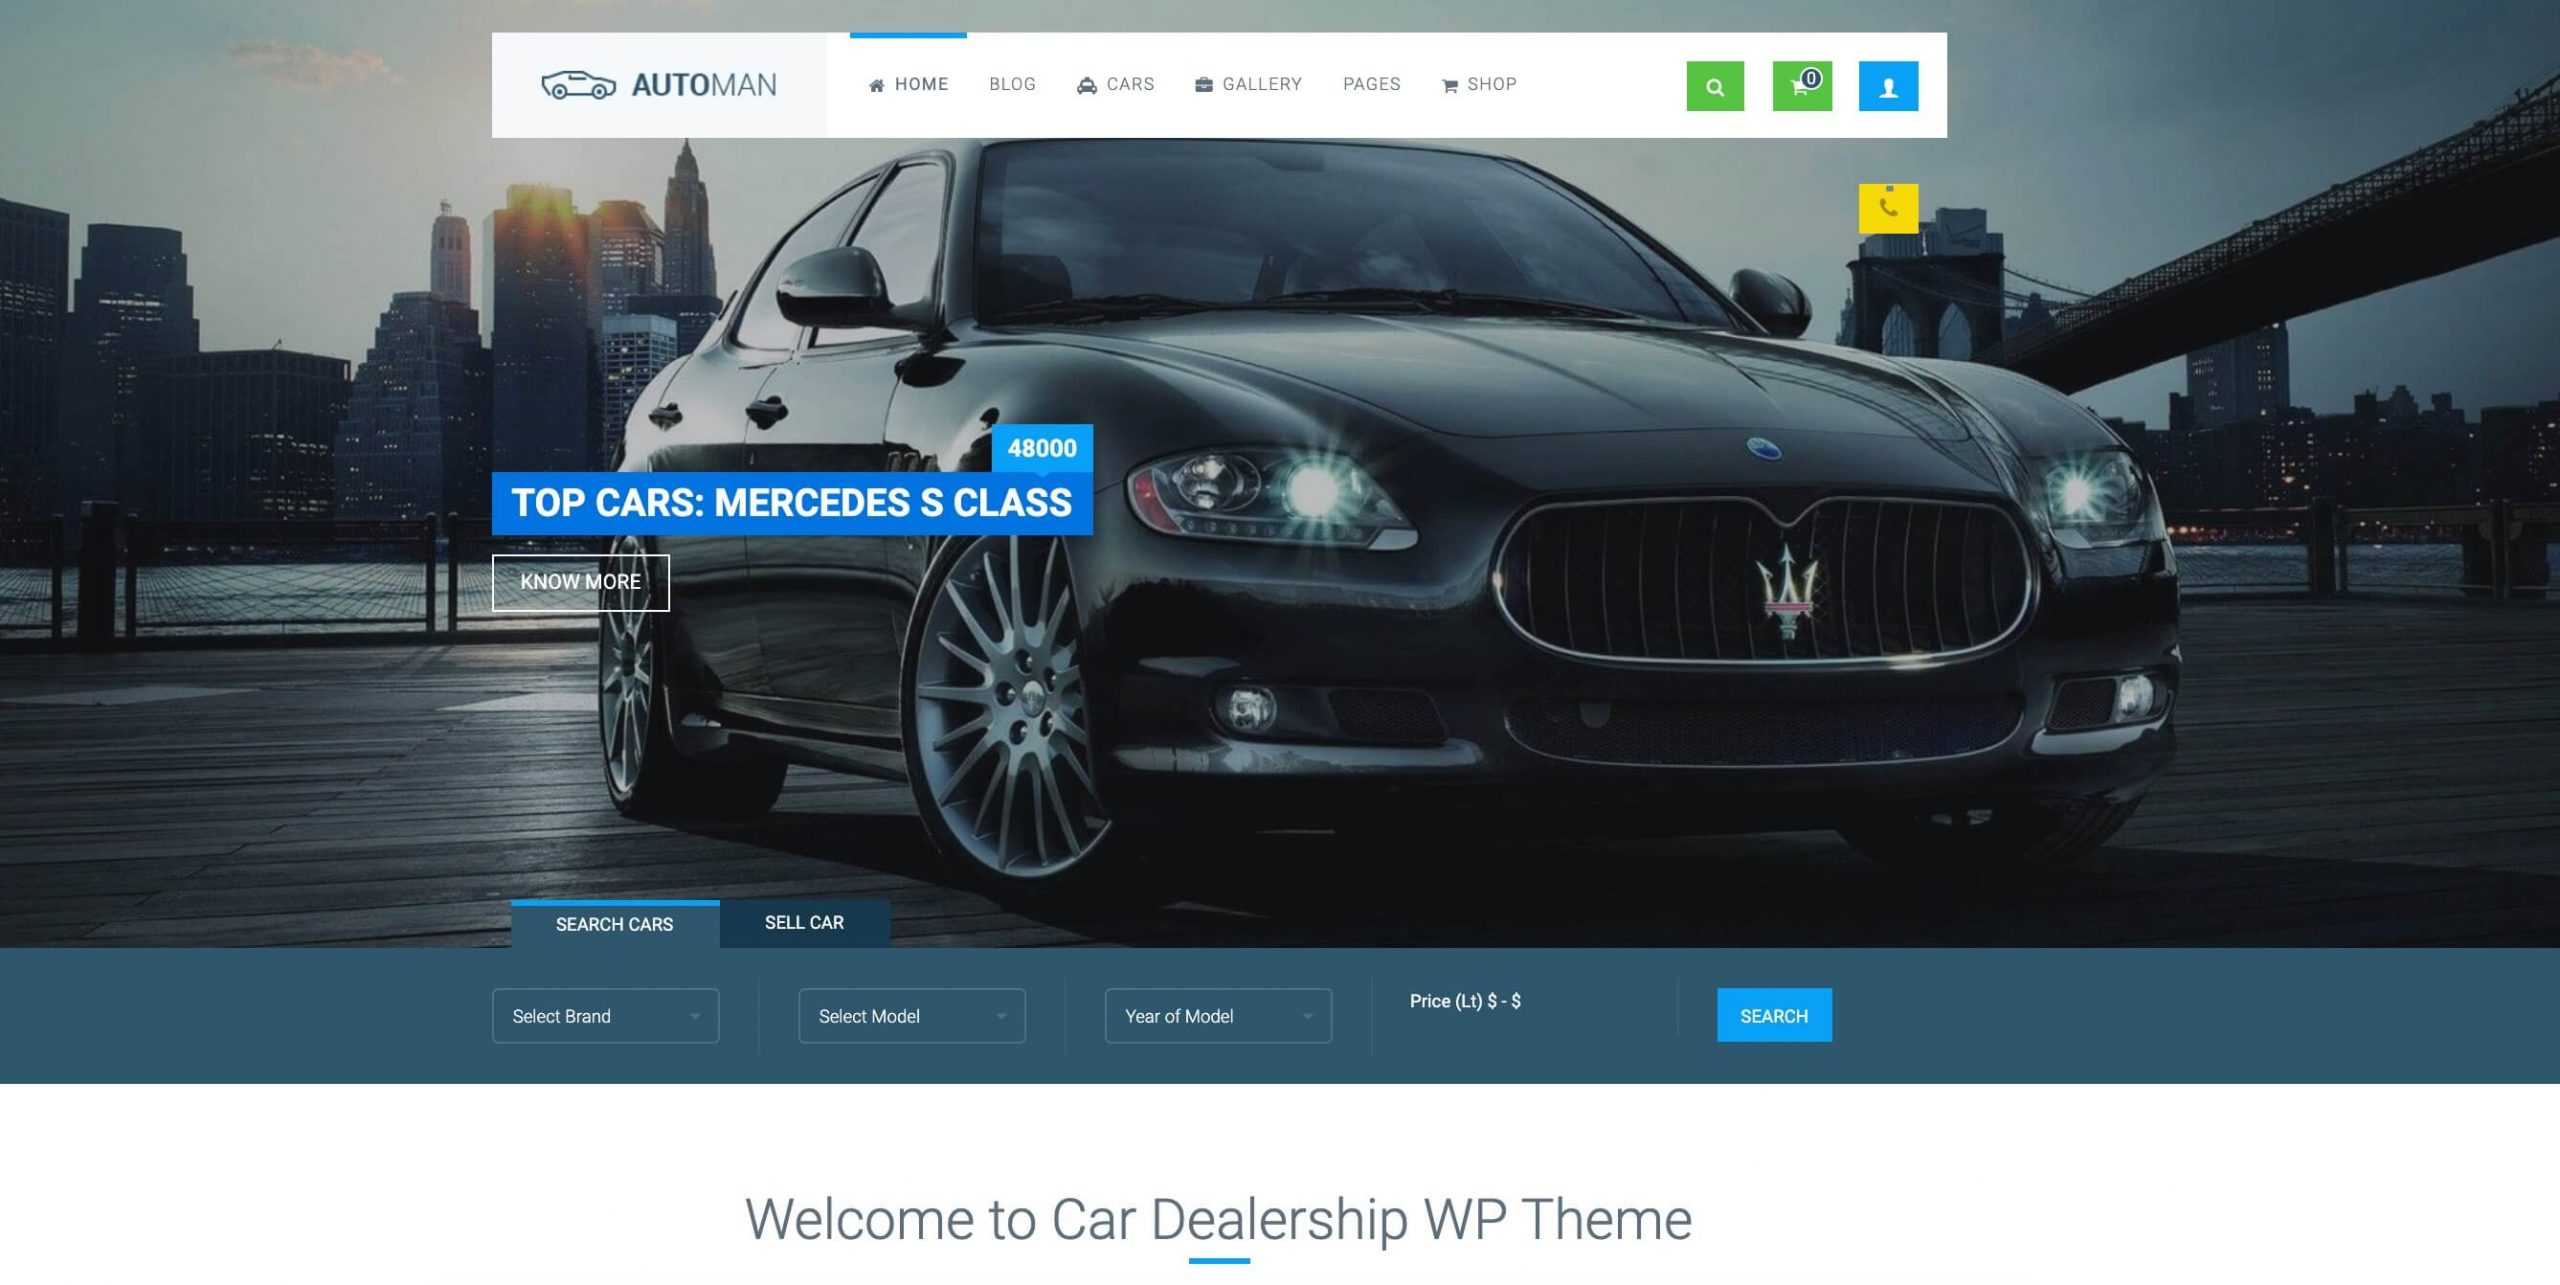 Automan - Advanced car dealer theme for auto